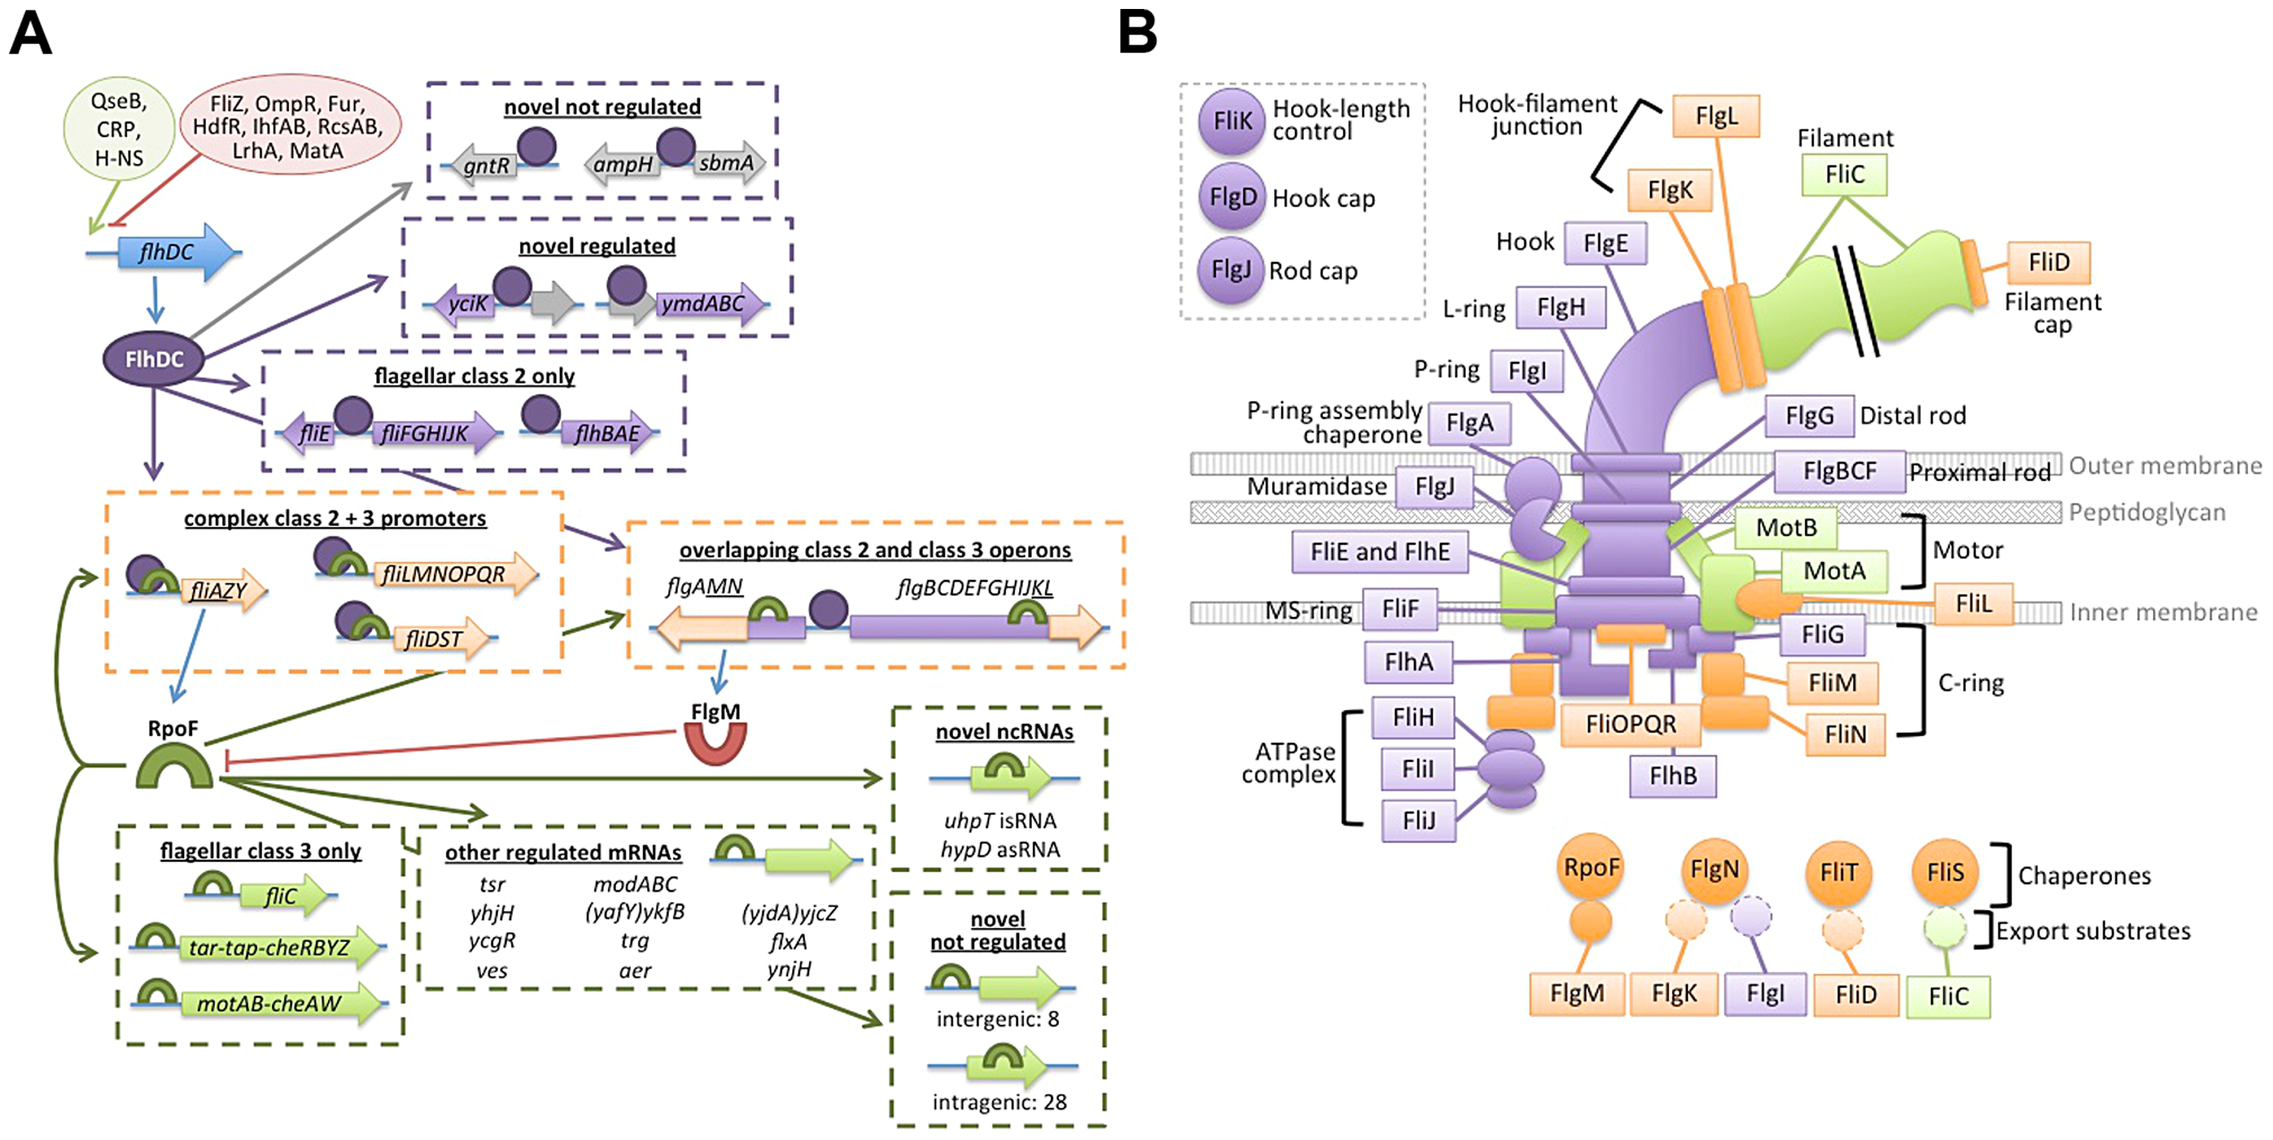 Updated flagellar transciption network and localization of dual-regulated targets.